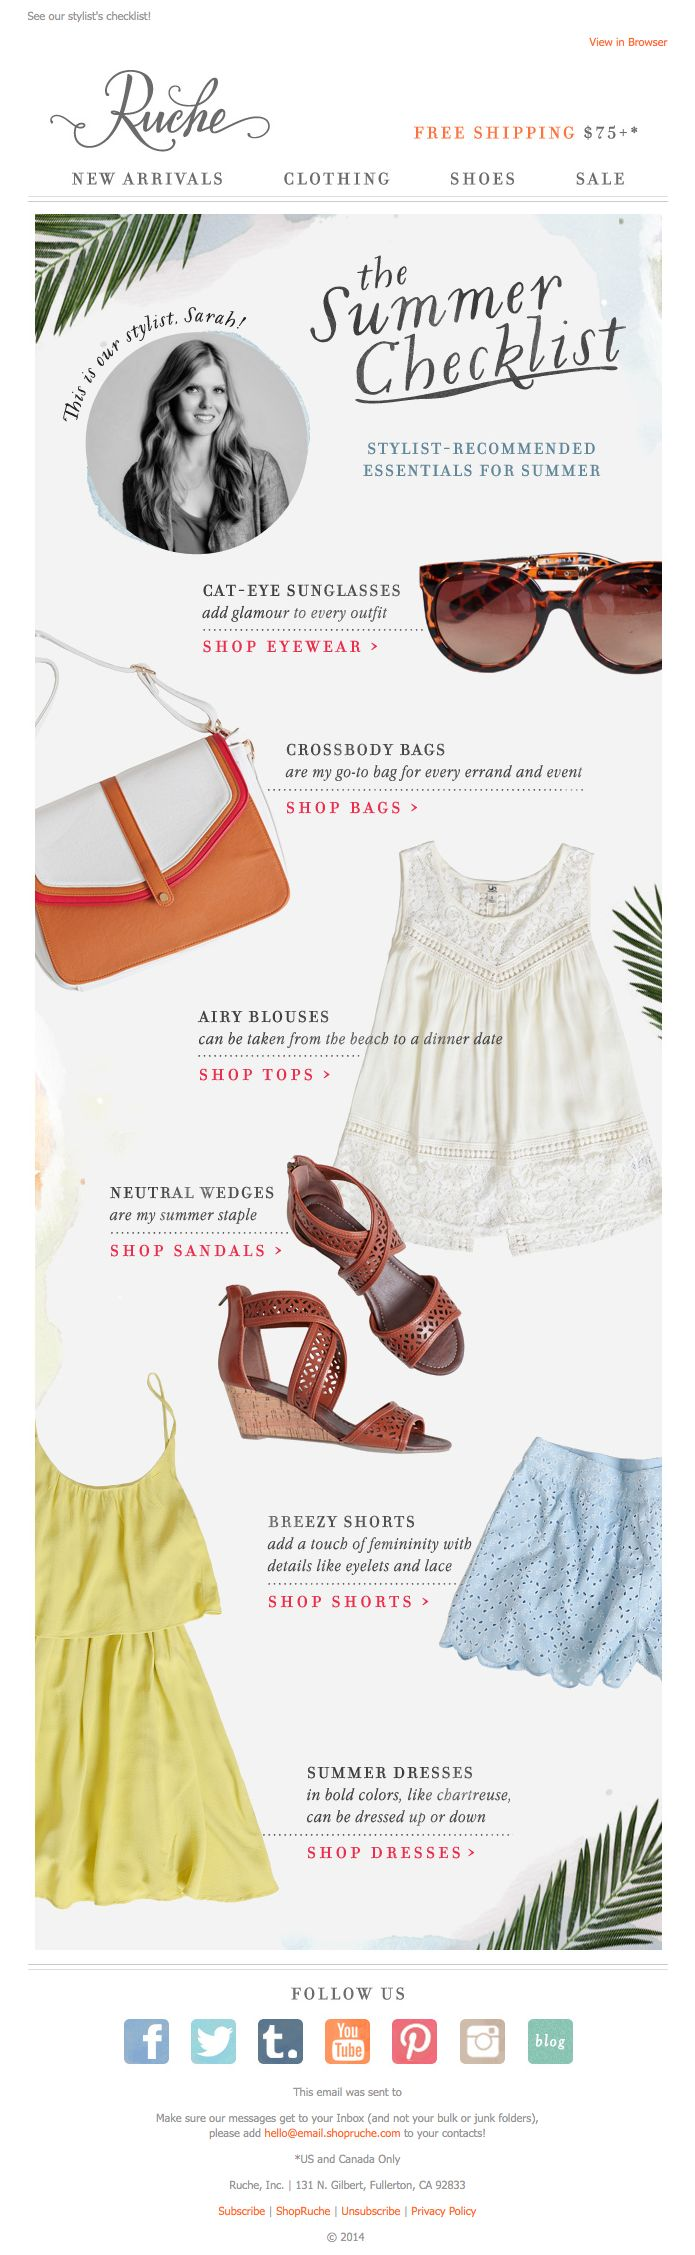 Ruche   newsletter   fashion email   fashion design   email   email marketing   email inspiration   e-mail